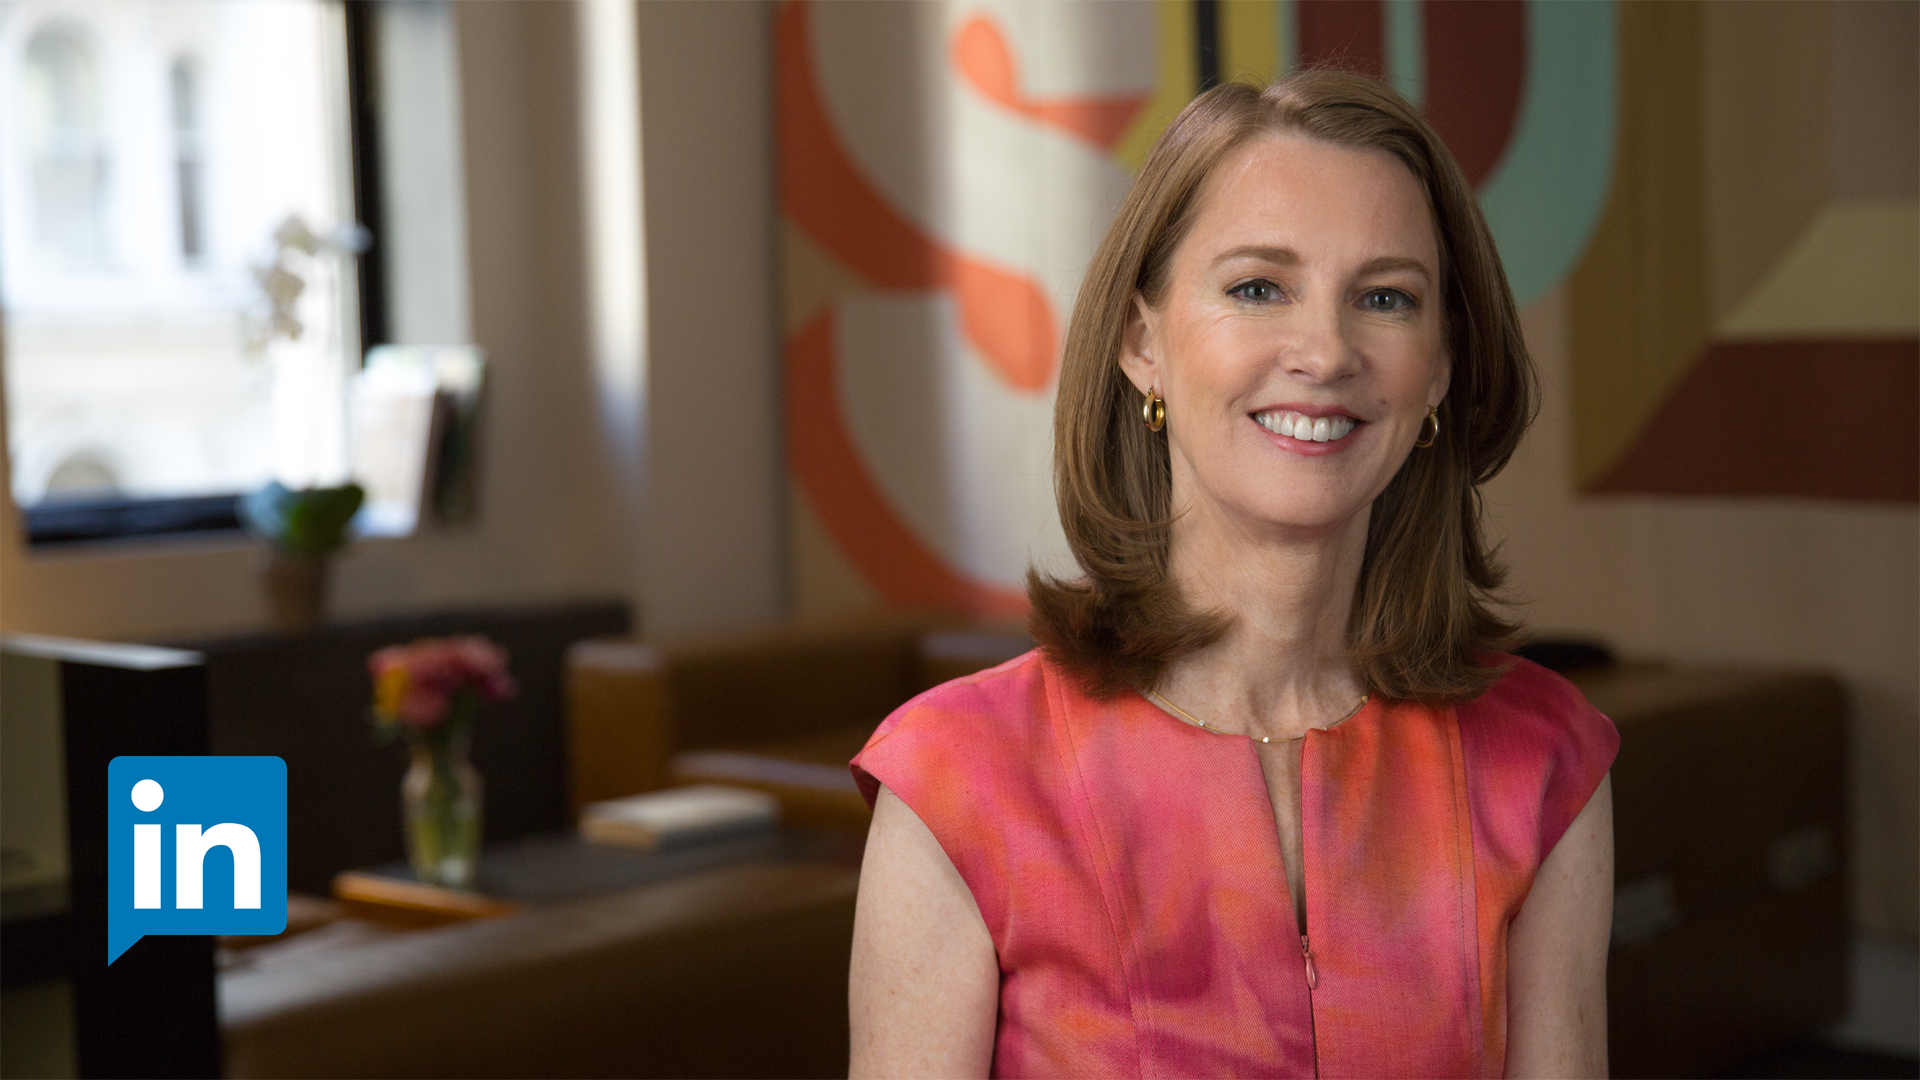 Upholders: Gretchen Rubin on Creating Great Workplace Habits